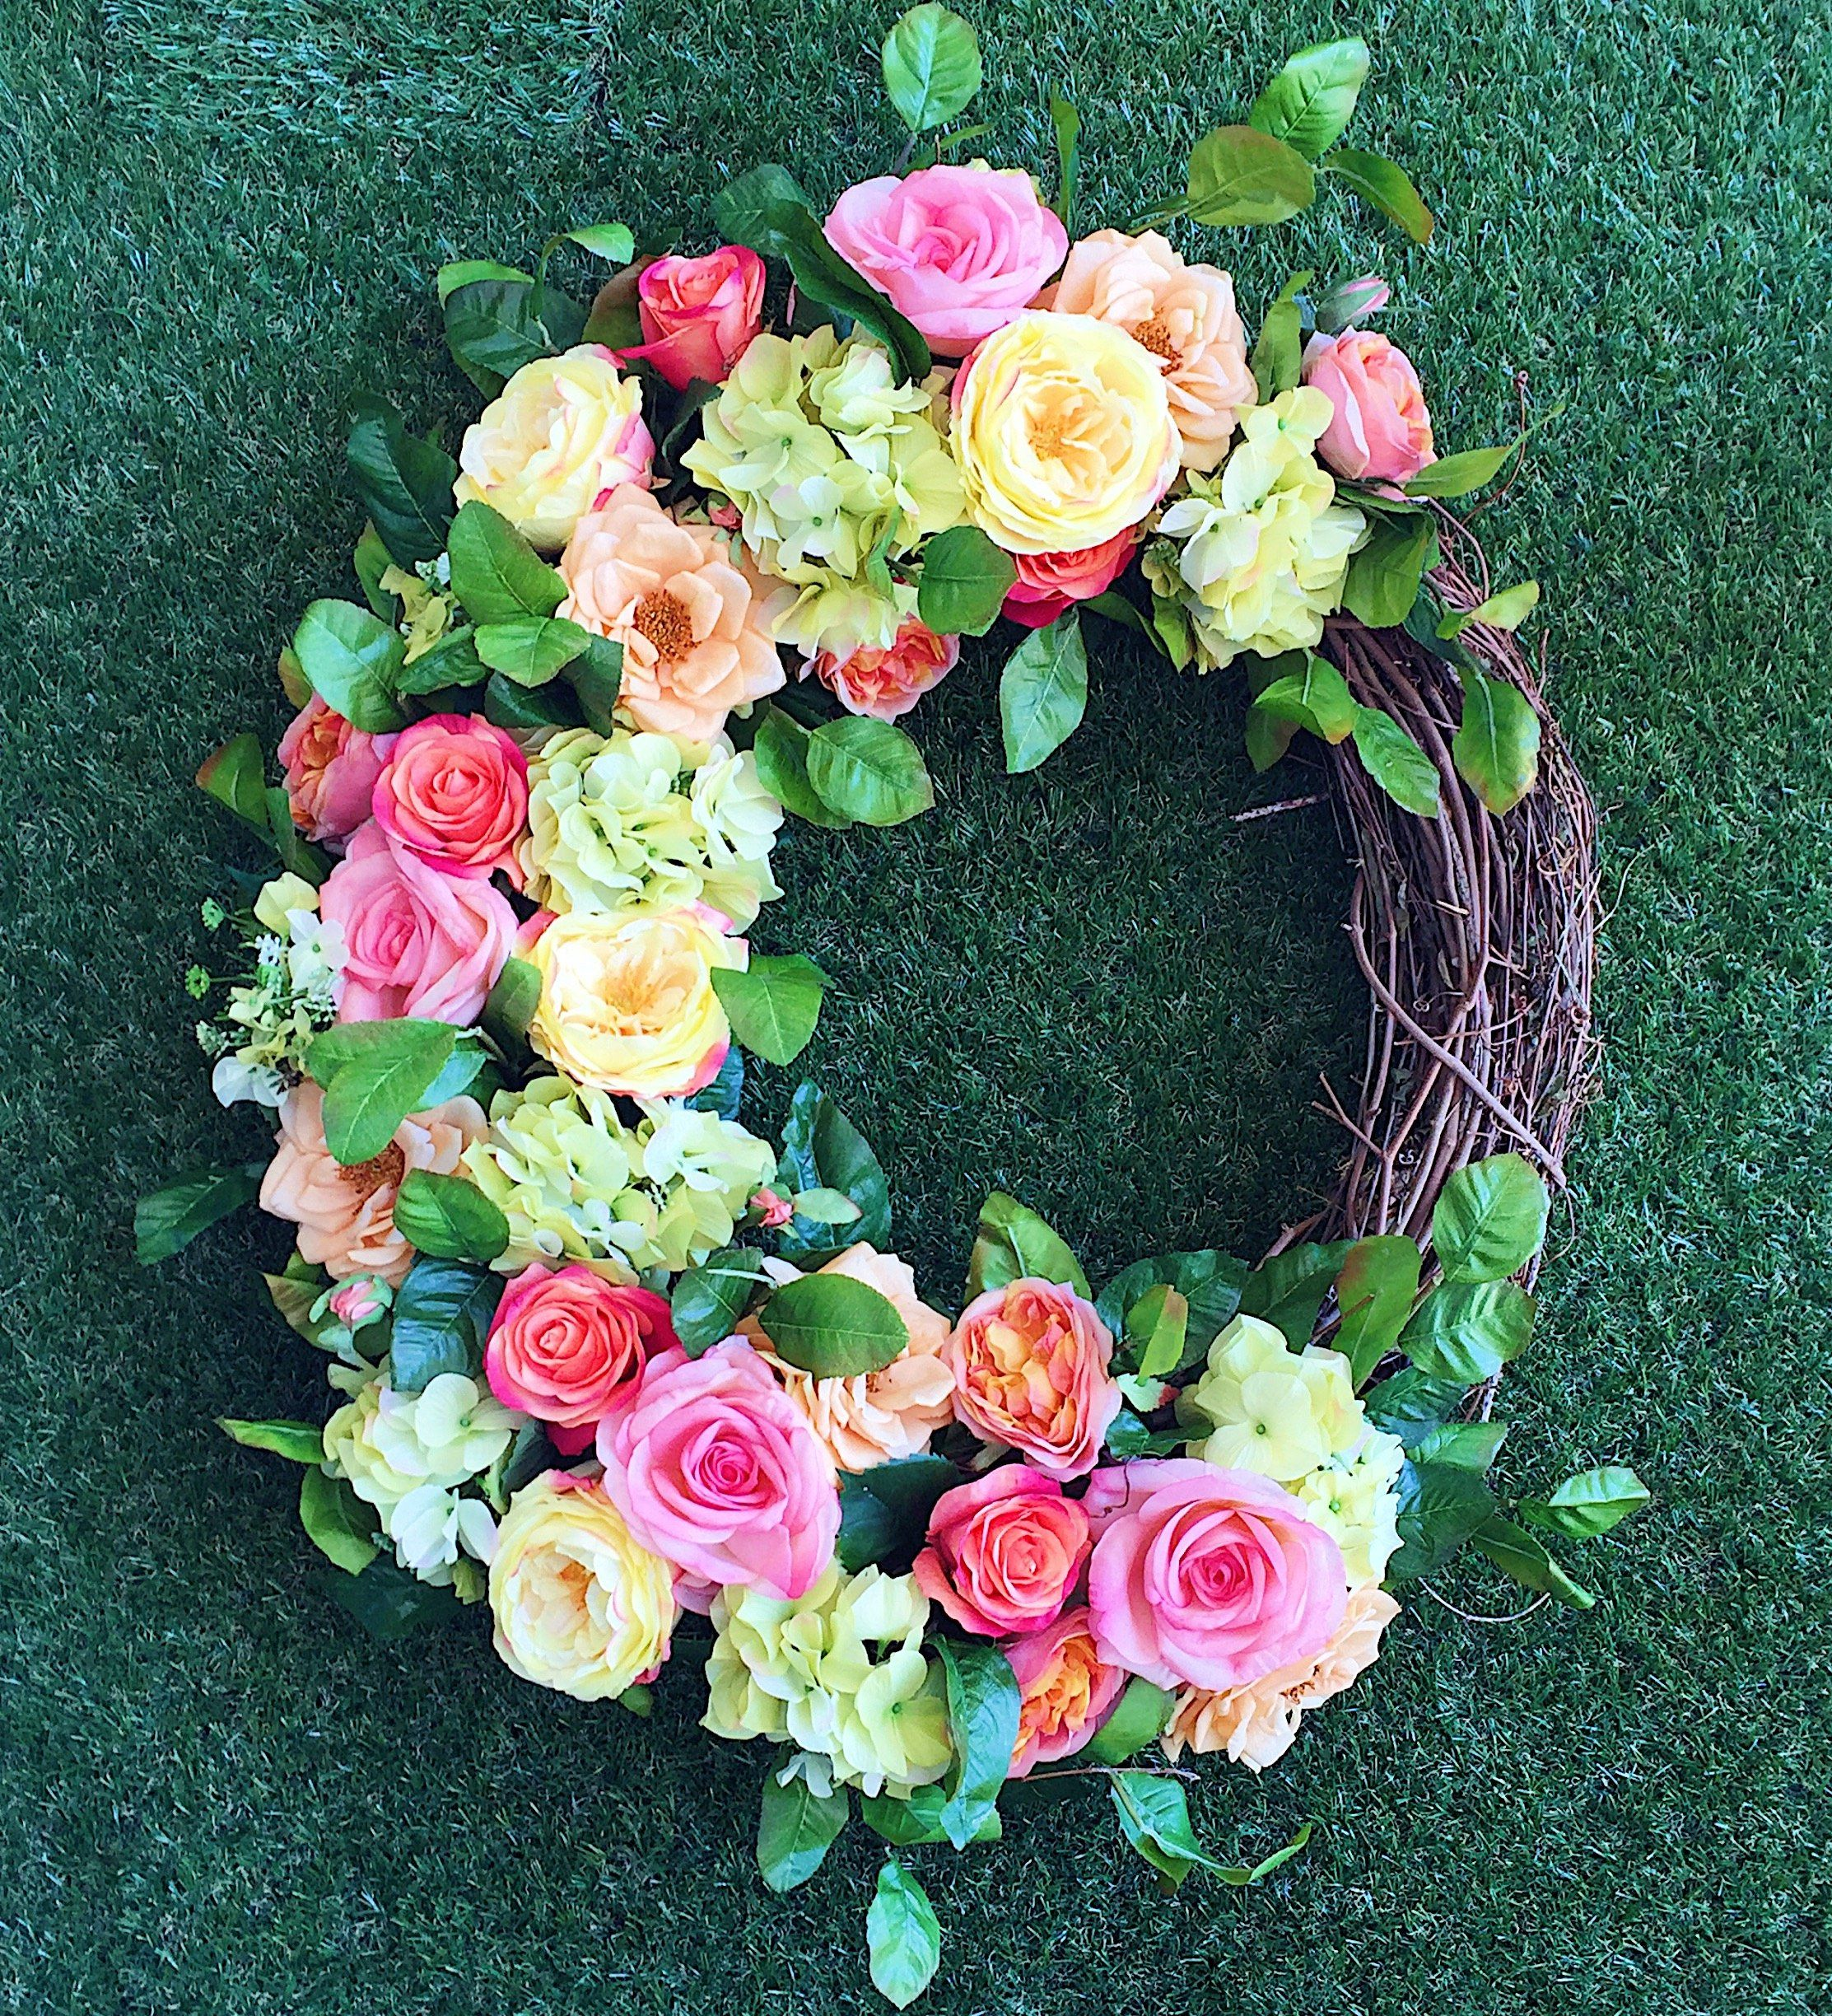 Custom floral wreath from our floral design class at Holiday Warehouse